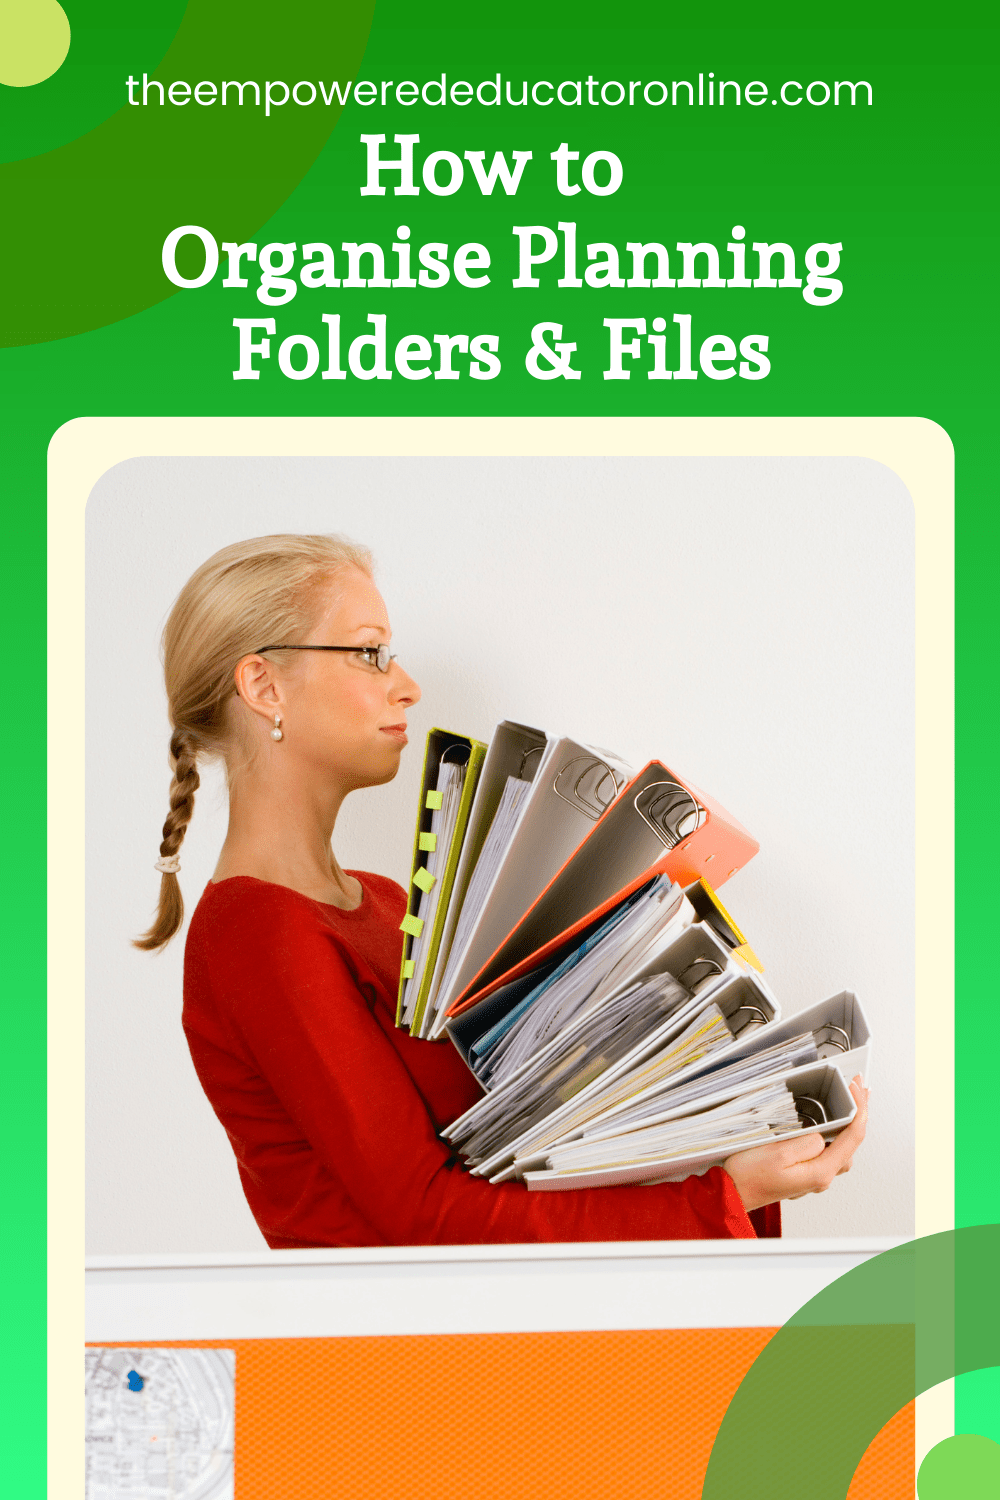 How to organise planning folders and files